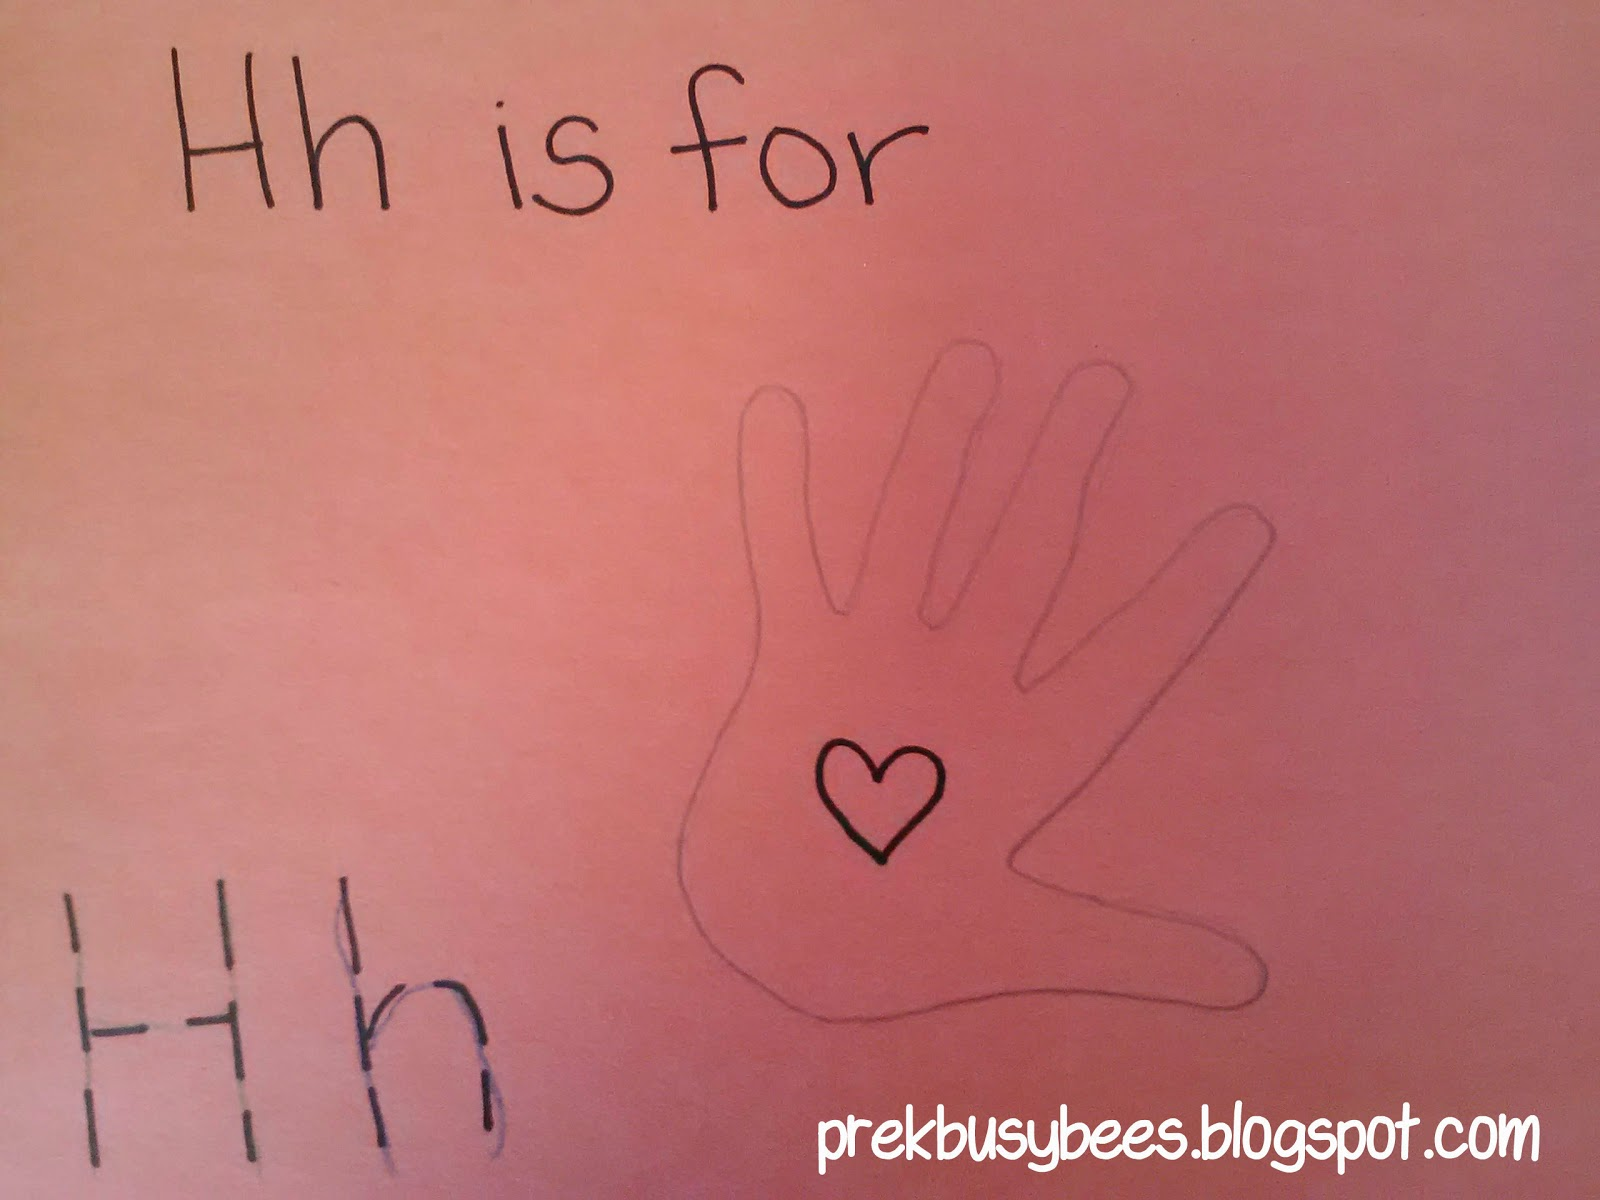 Pre-K Busy Bees: Hh is for Hand and Heart